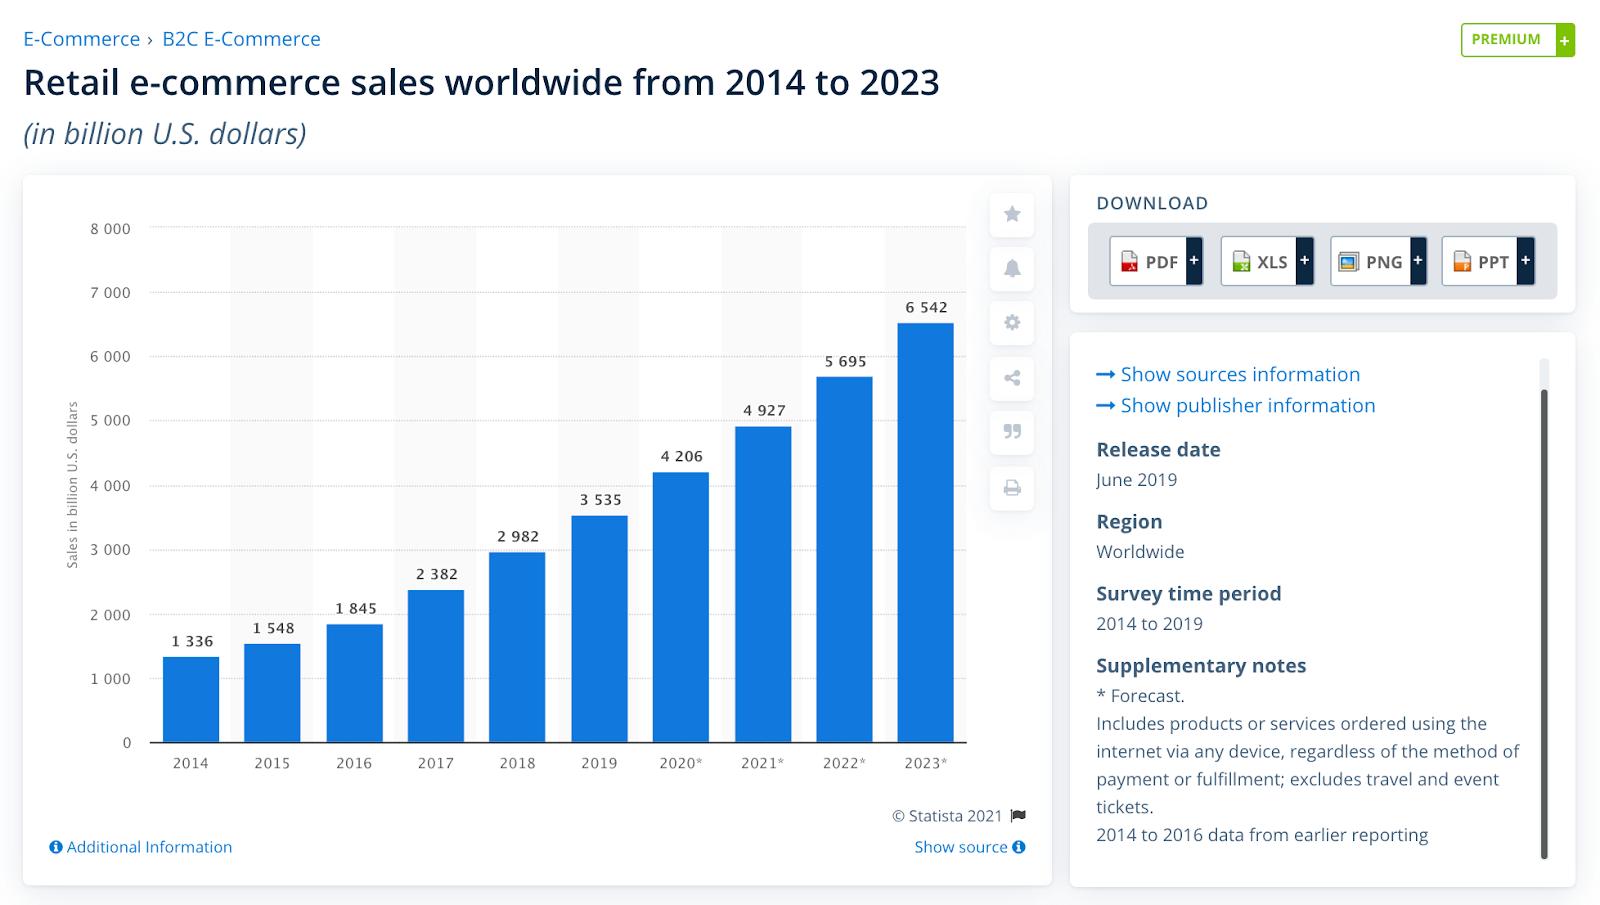 Retail ecommerce sales worldwide from 2014 to 2023